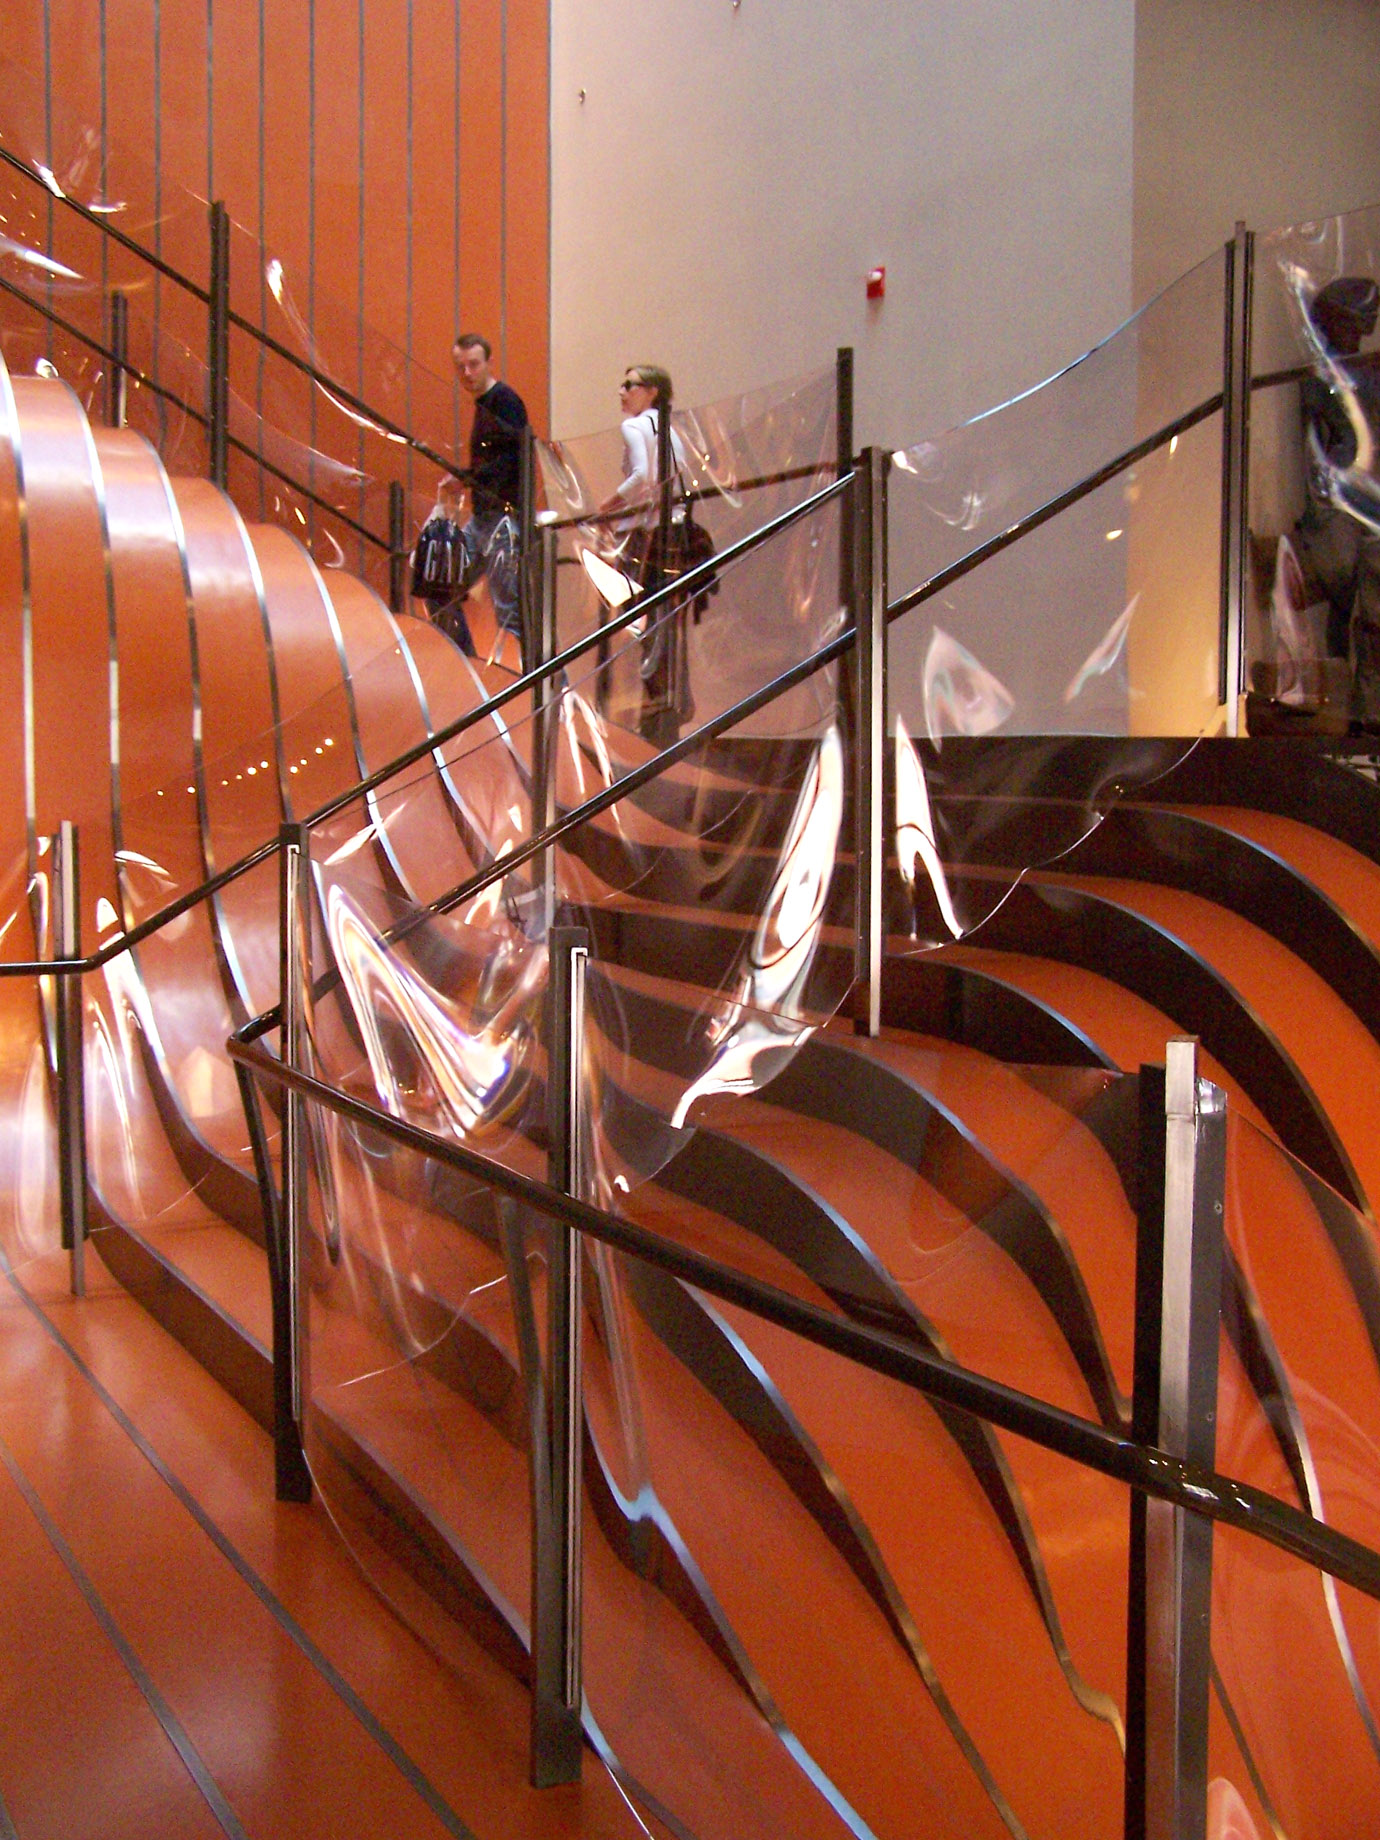 Unusual and Creative Staircase Designs at the Longchamp Store in New York City